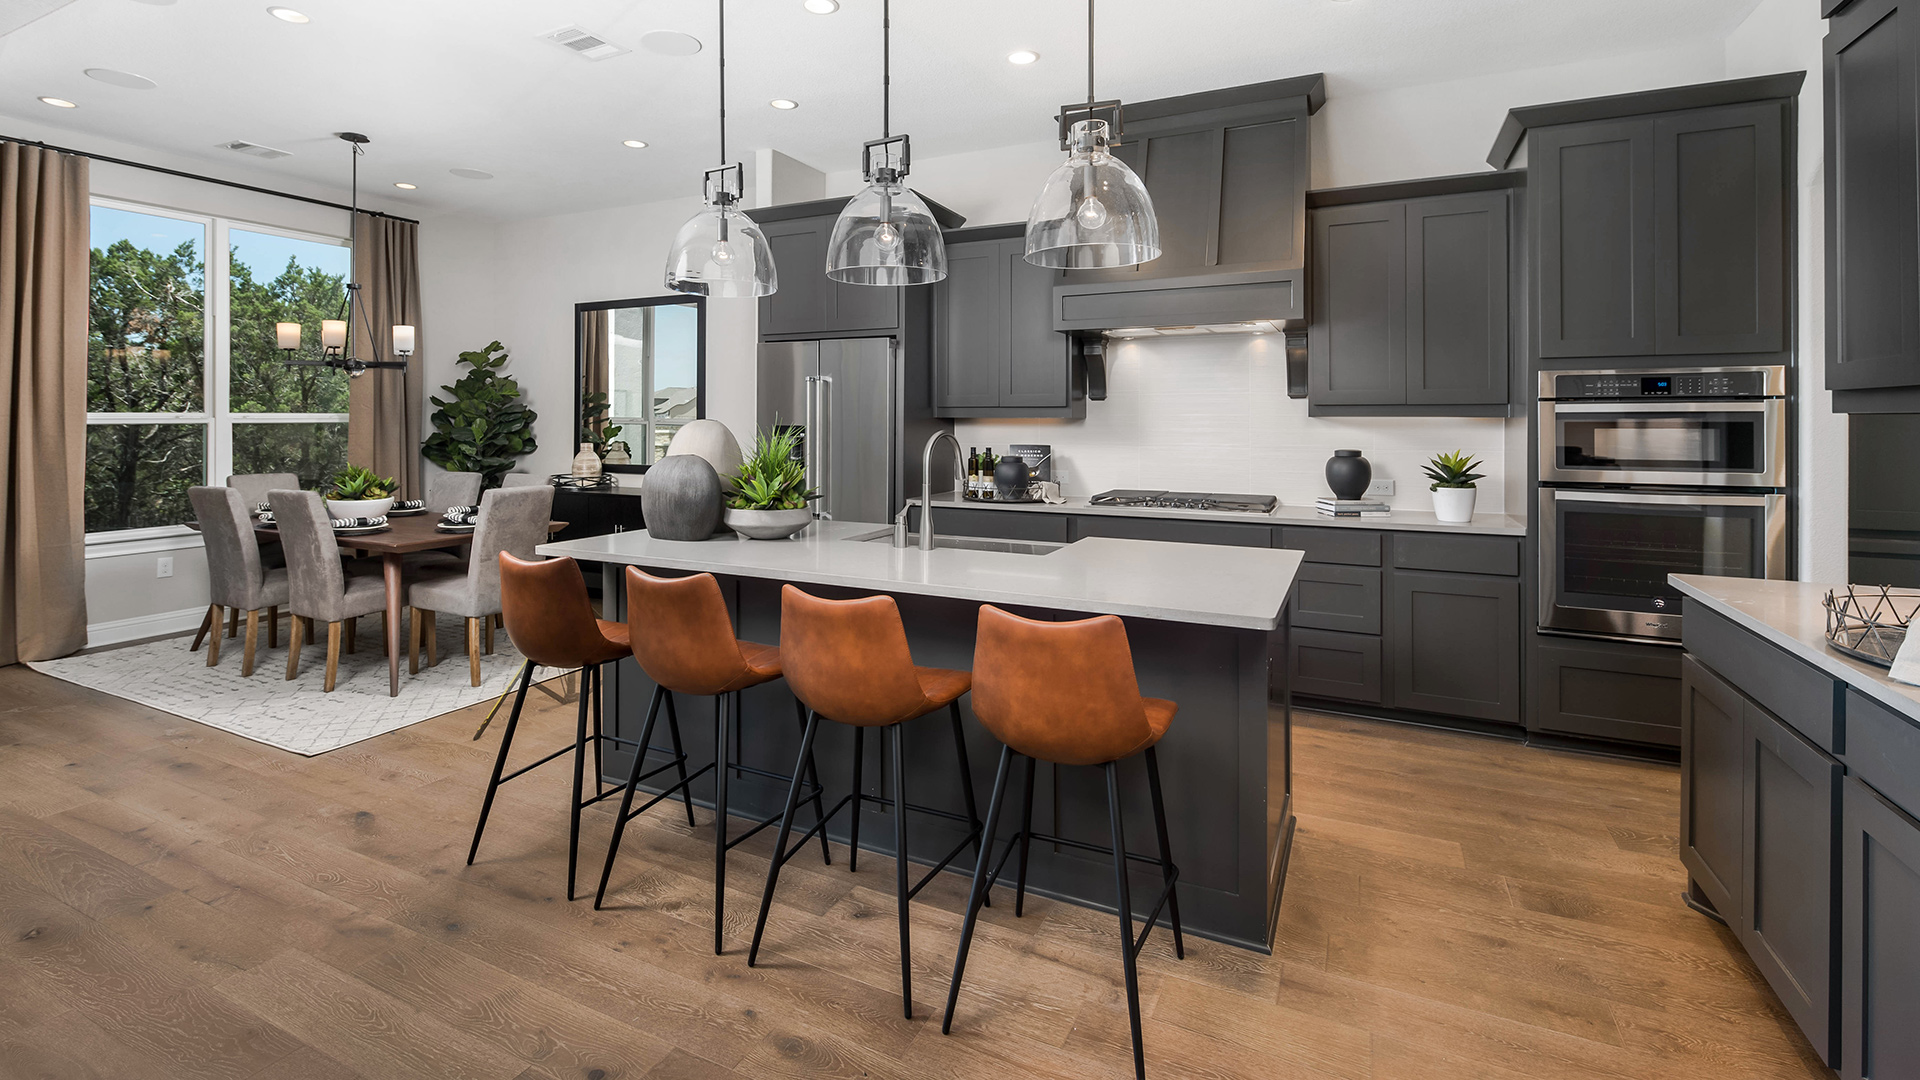 Gourmet Artisan kitchen with casual dining area